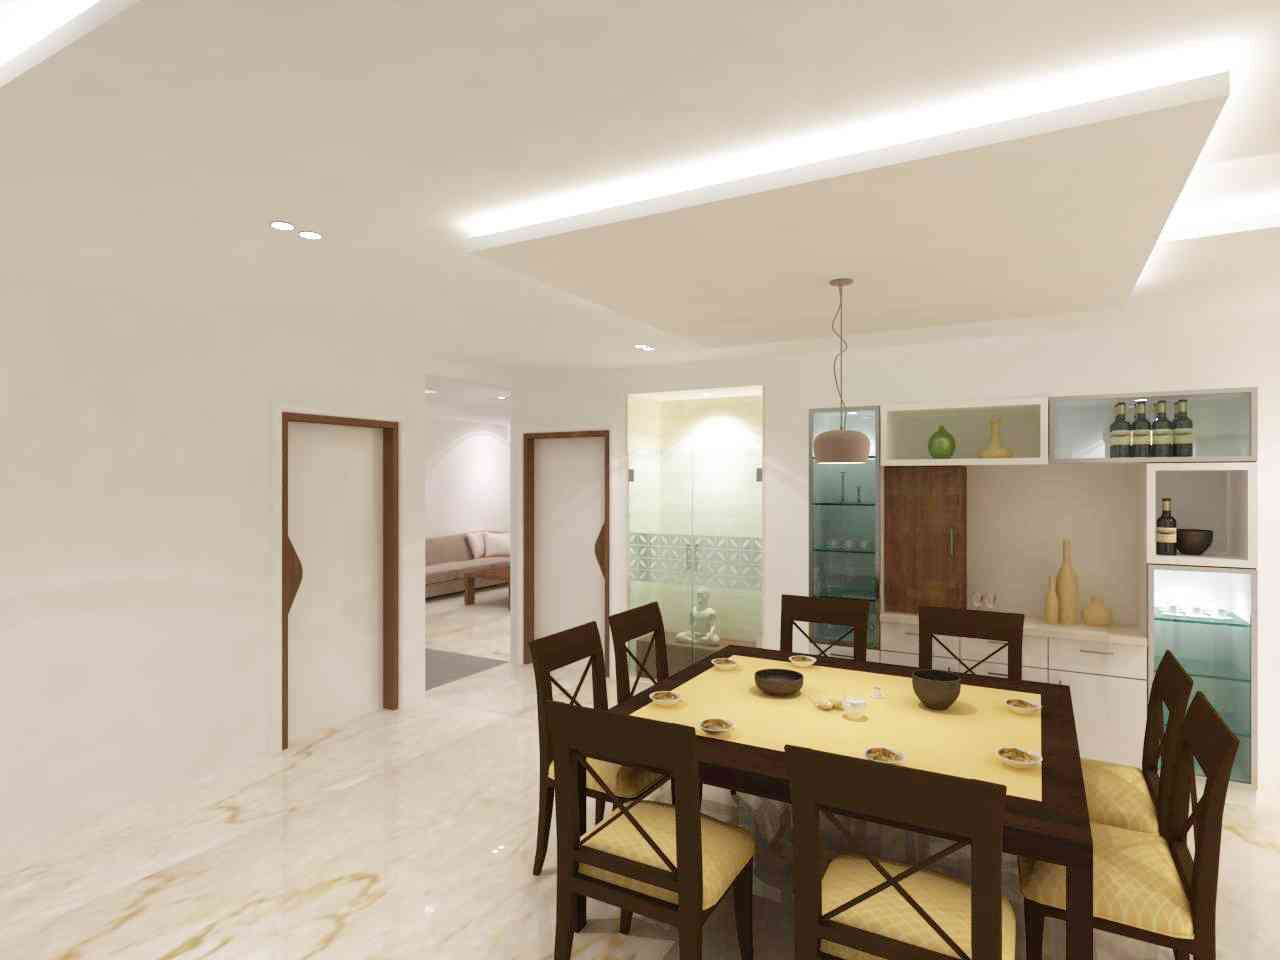 The Dining Area With Home Bar Design By Samanth Gowda Architect In Hyderabad Andhra